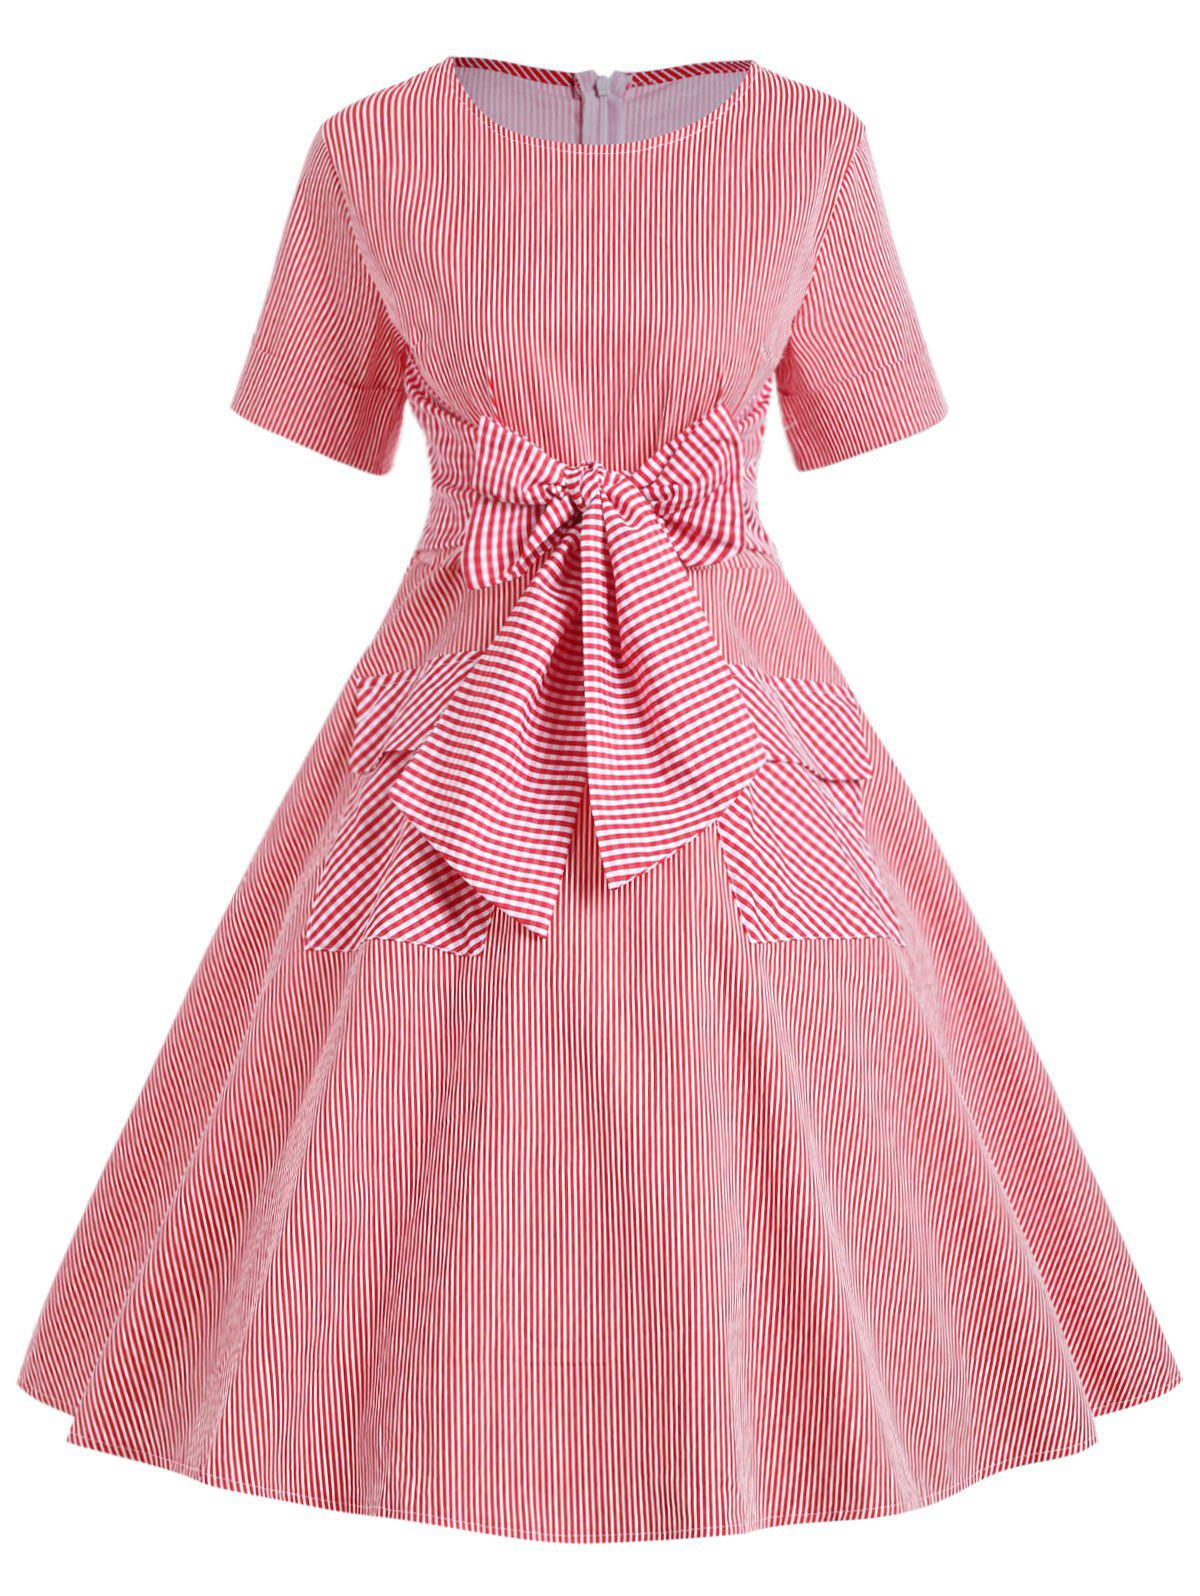 Unique Vintage Double Pockets Stripe Bowknot Dress